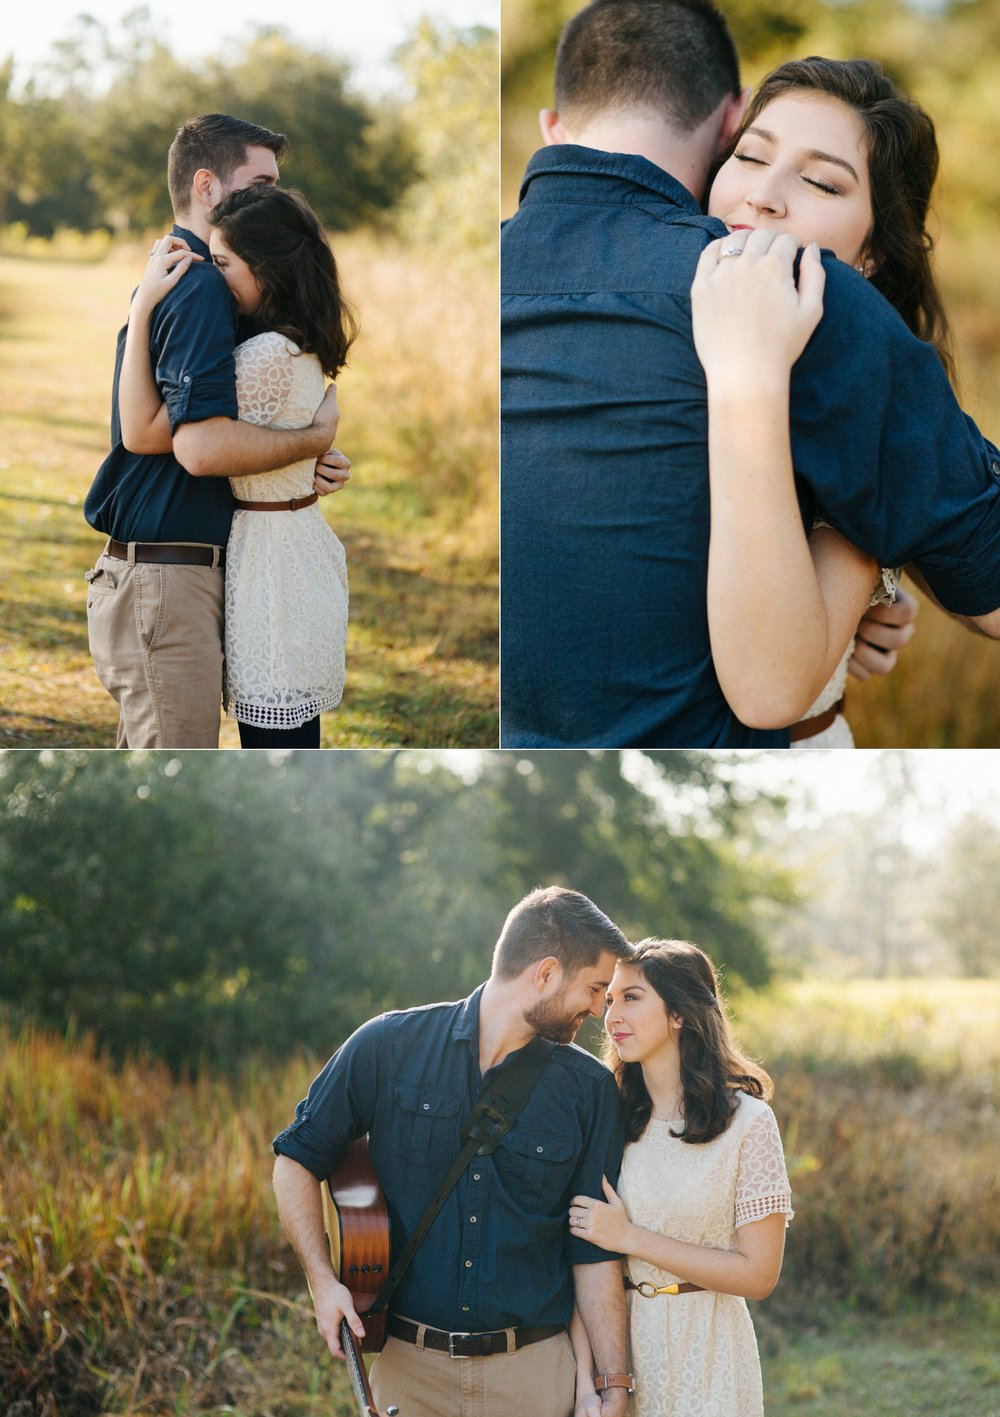 tampa engagement photographer jarrod kayleigh proposal jake and katie photography-007.jpg